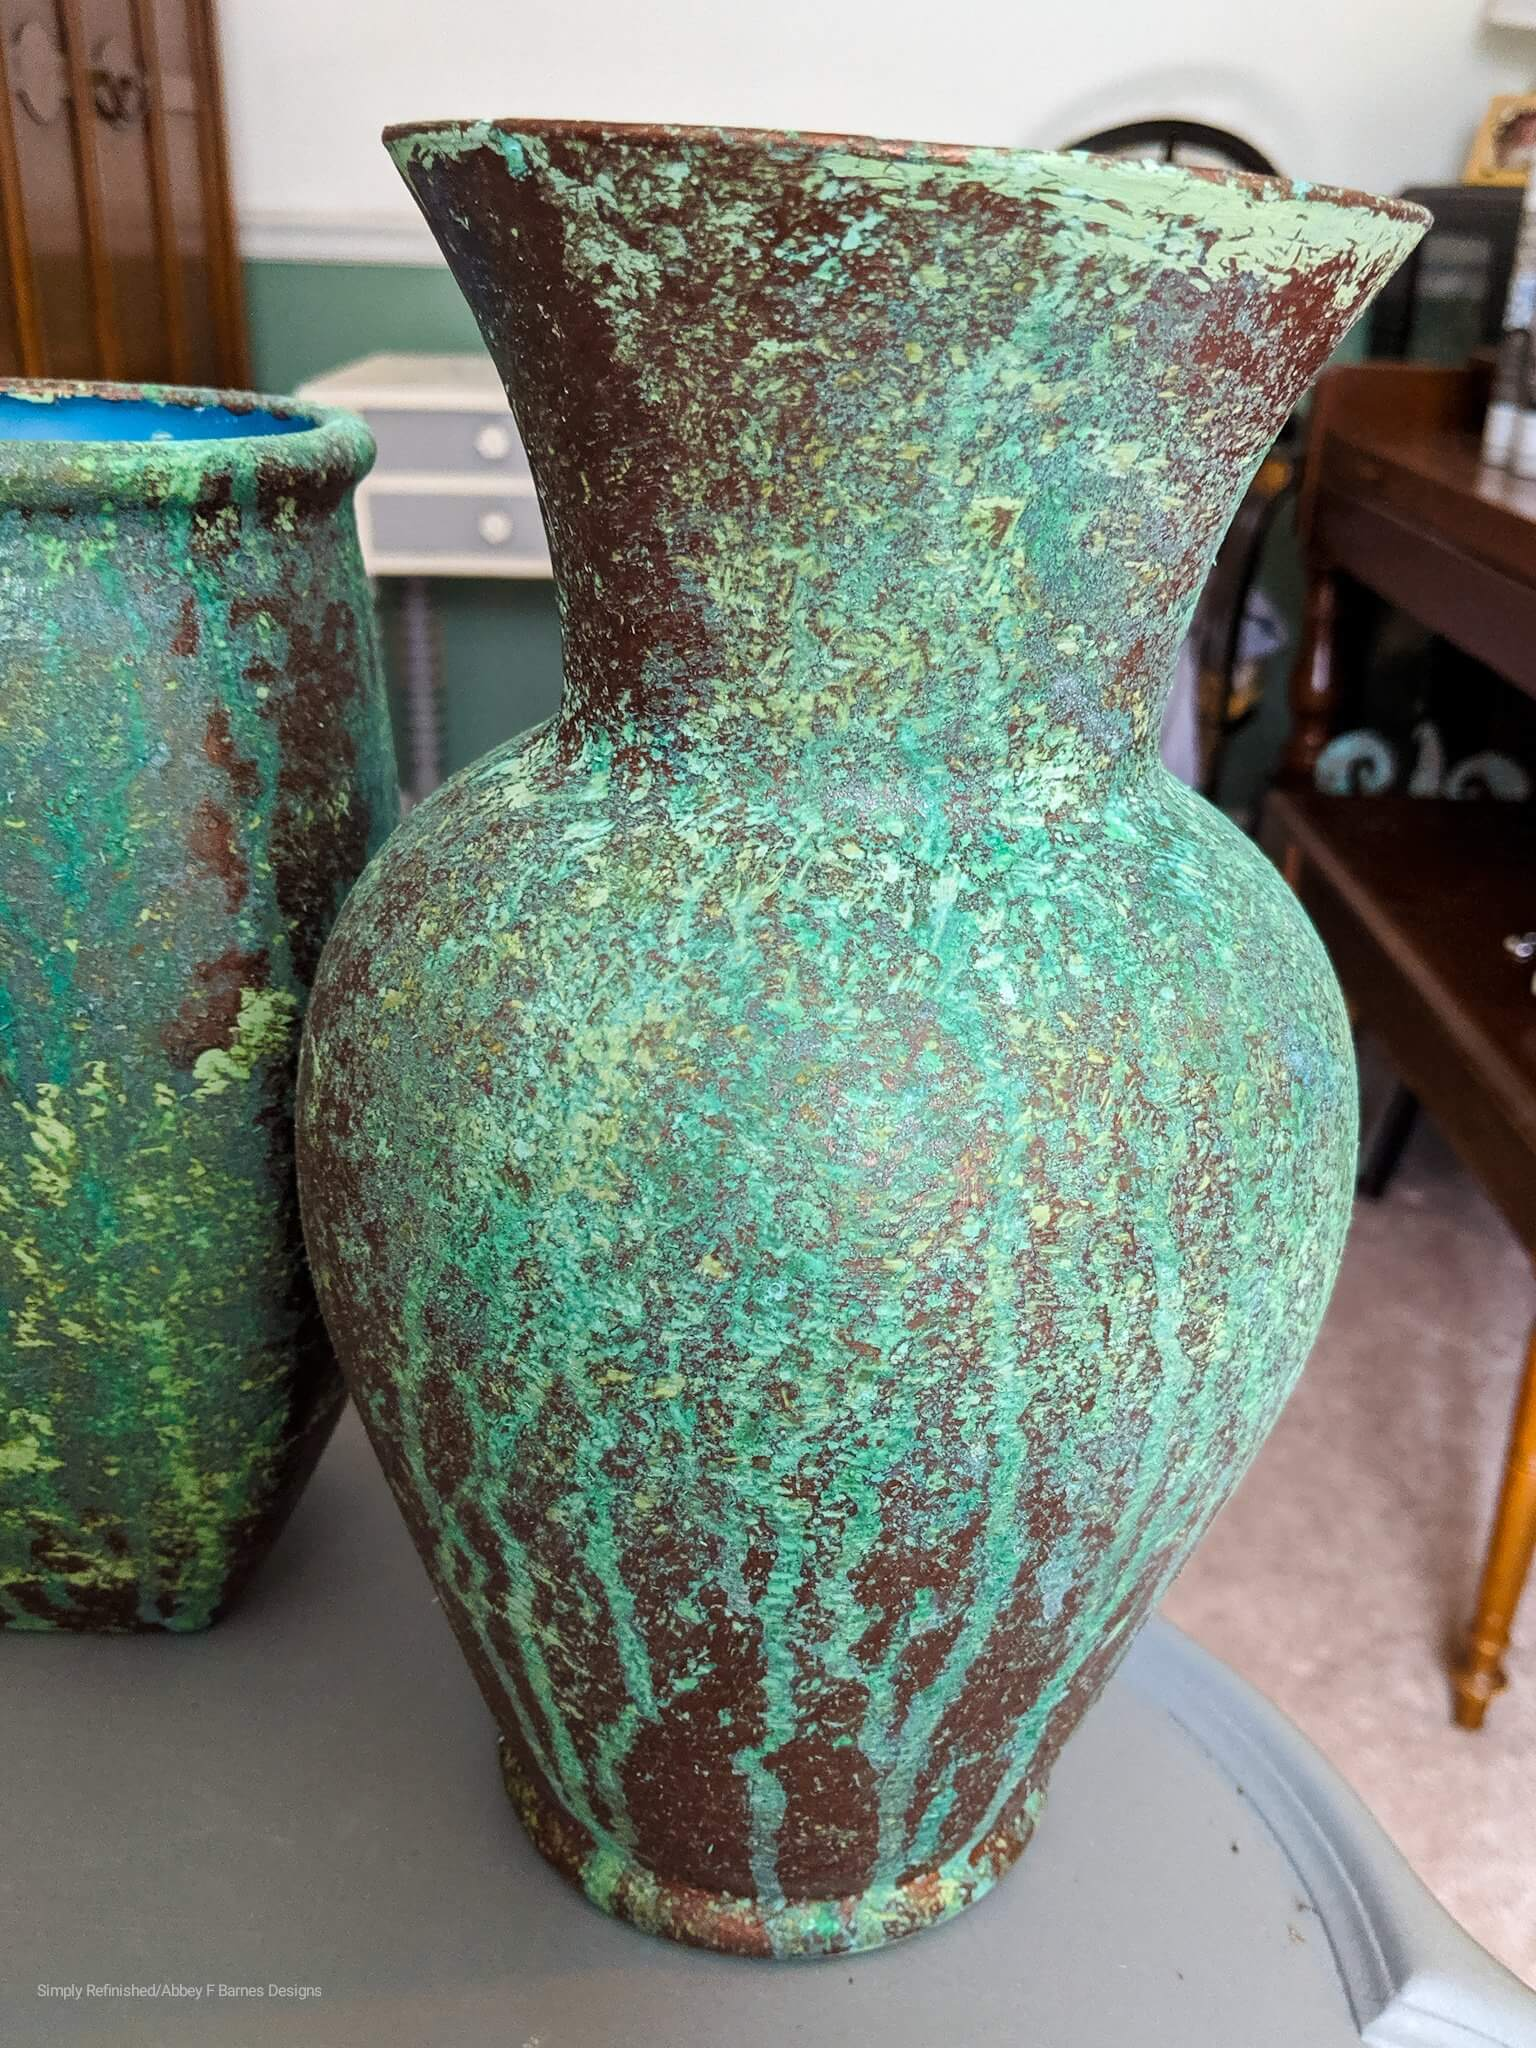 green patina finish on glass vase